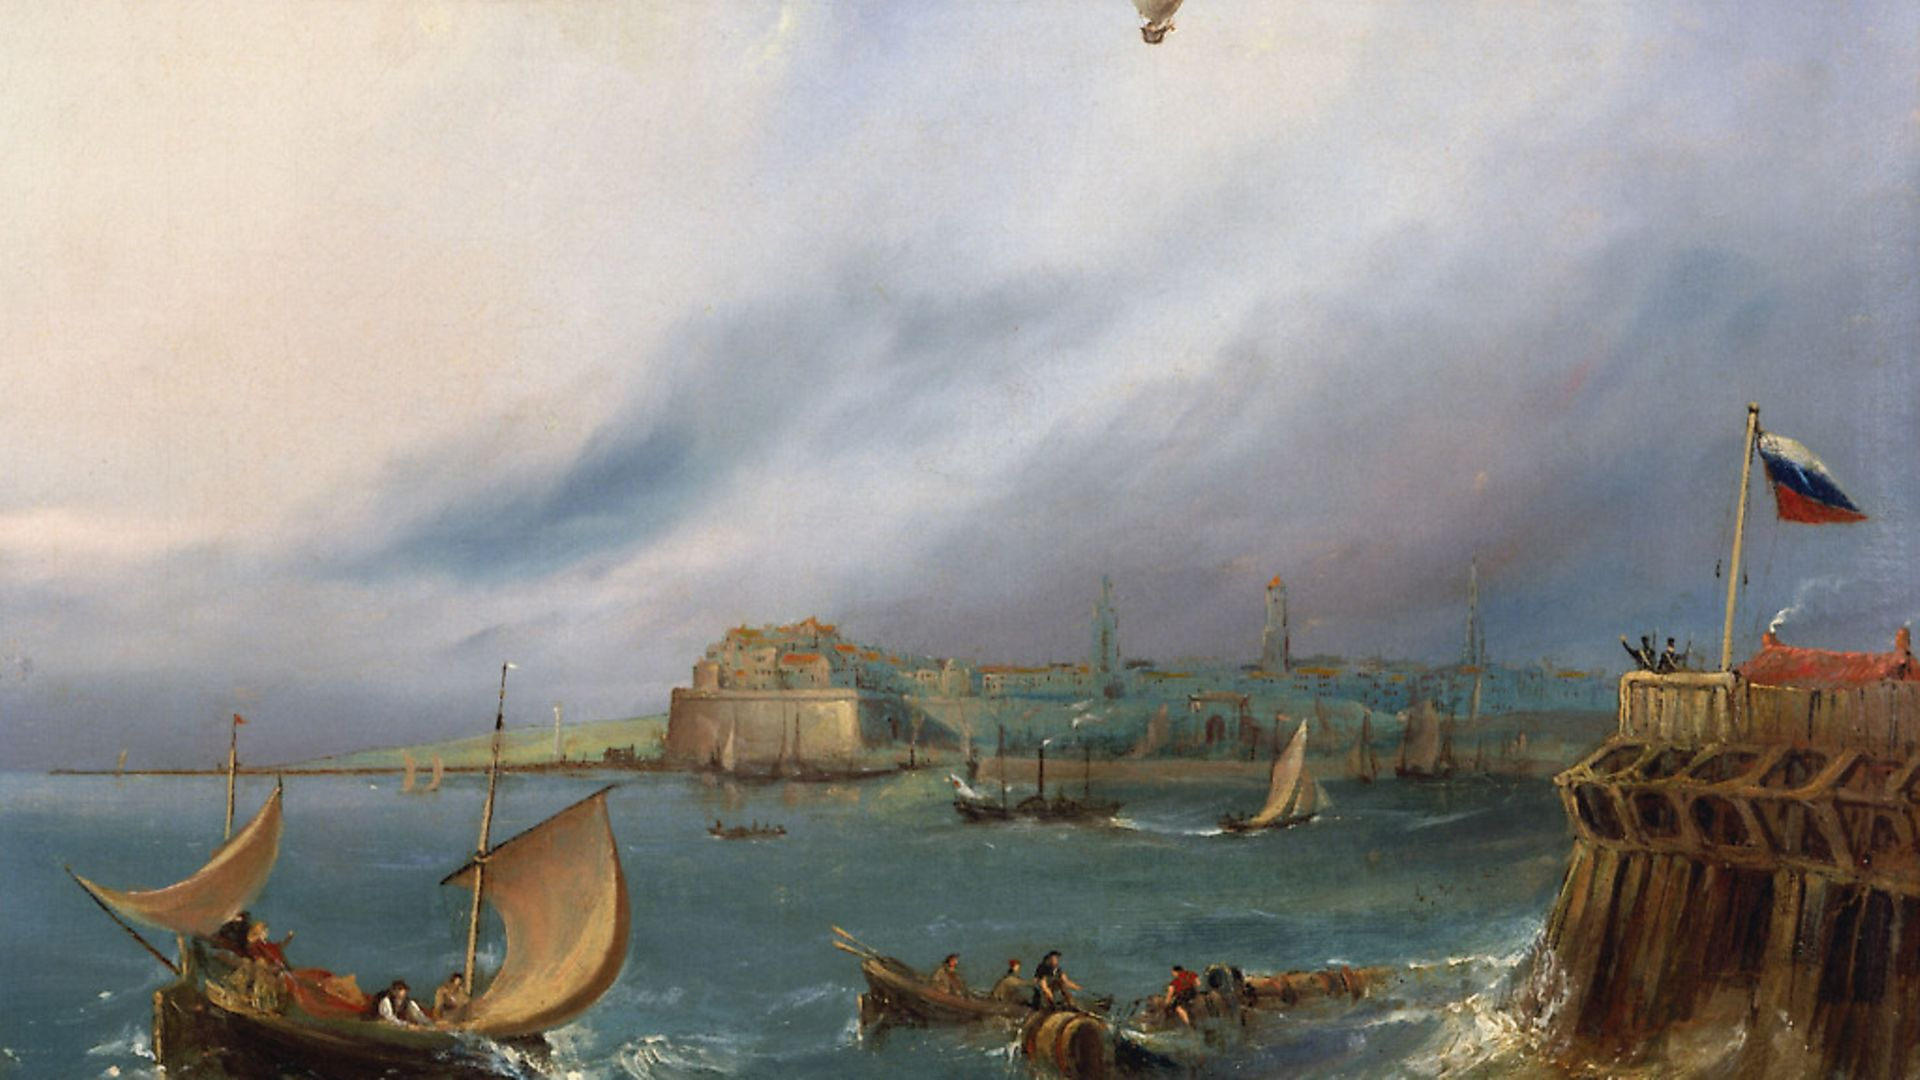 An oil painting made c 1840 by E W Cocks depicts Jean-Pierre Blanchard's balloon arriving at Calais Harbour in 1785. Photo by SSPL/Getty Images - Credit: SSPL via Getty Images